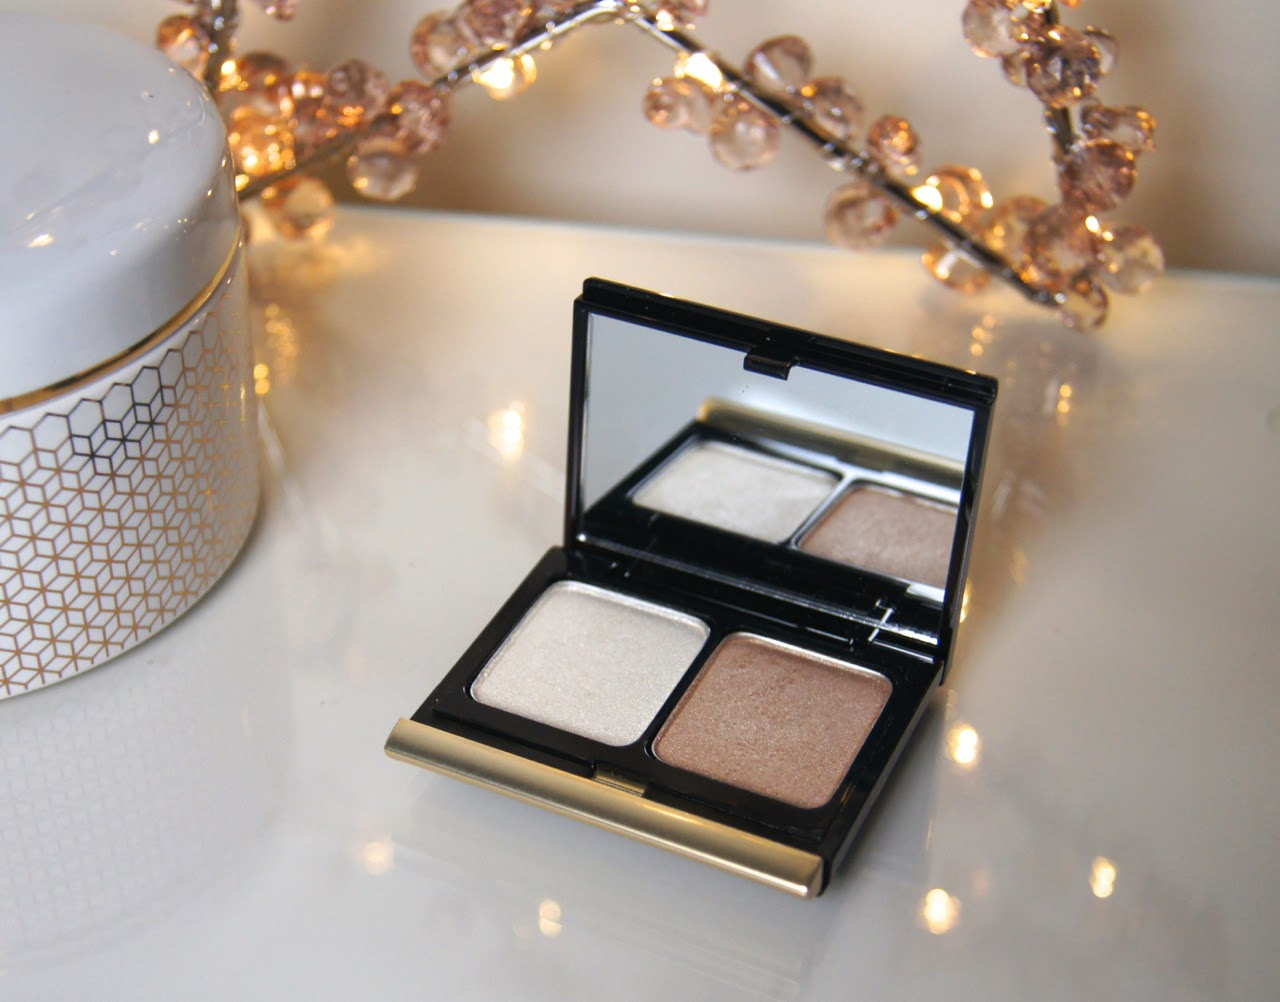 kevyn aucoin eyeshadow duo #202 review